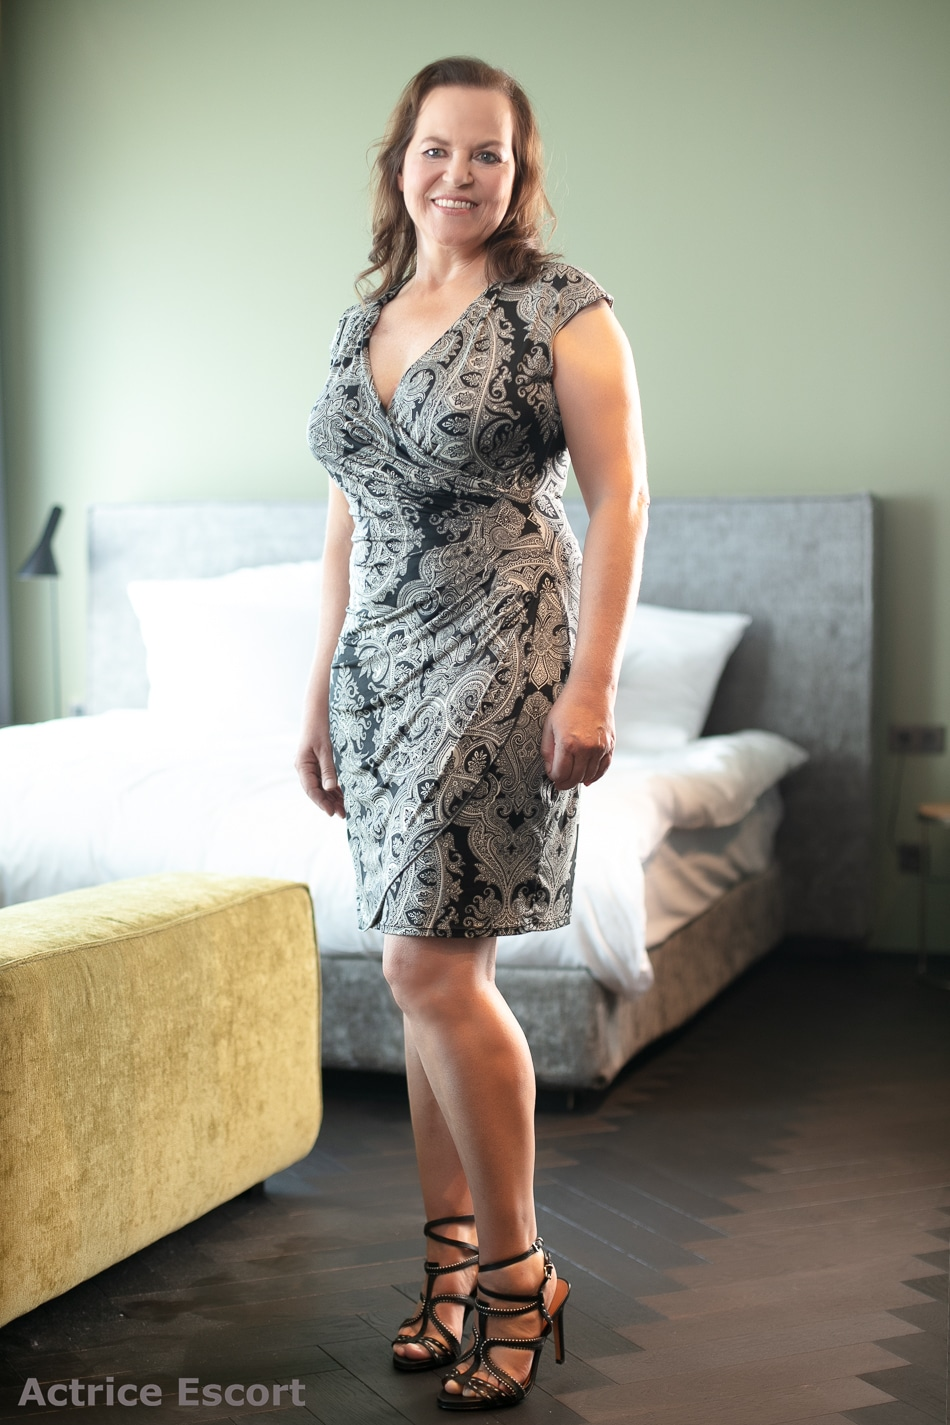 Bettina reife Frau Escortservice Duesseldorf(31)